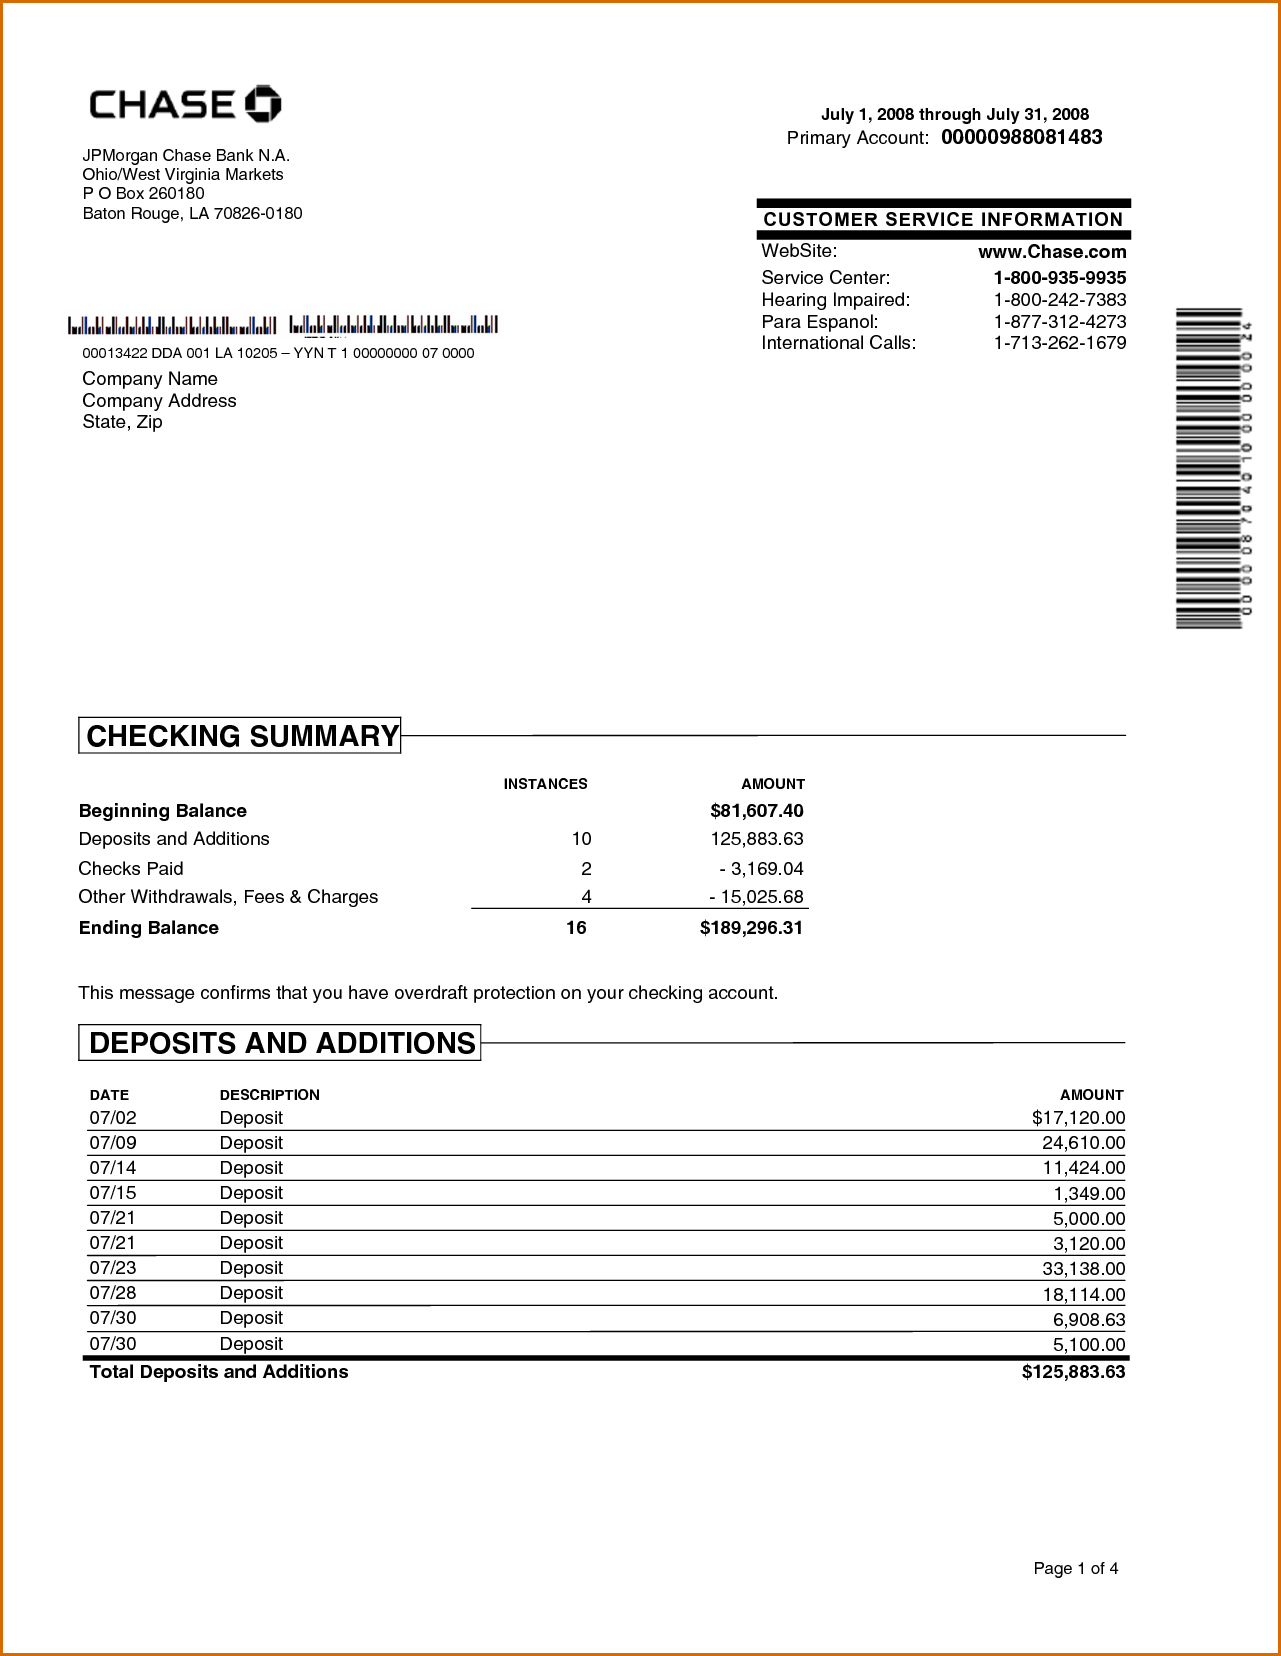 Chase Bank Statement Online Template | Best Template With Regard To Blank Bank Statement Template Download